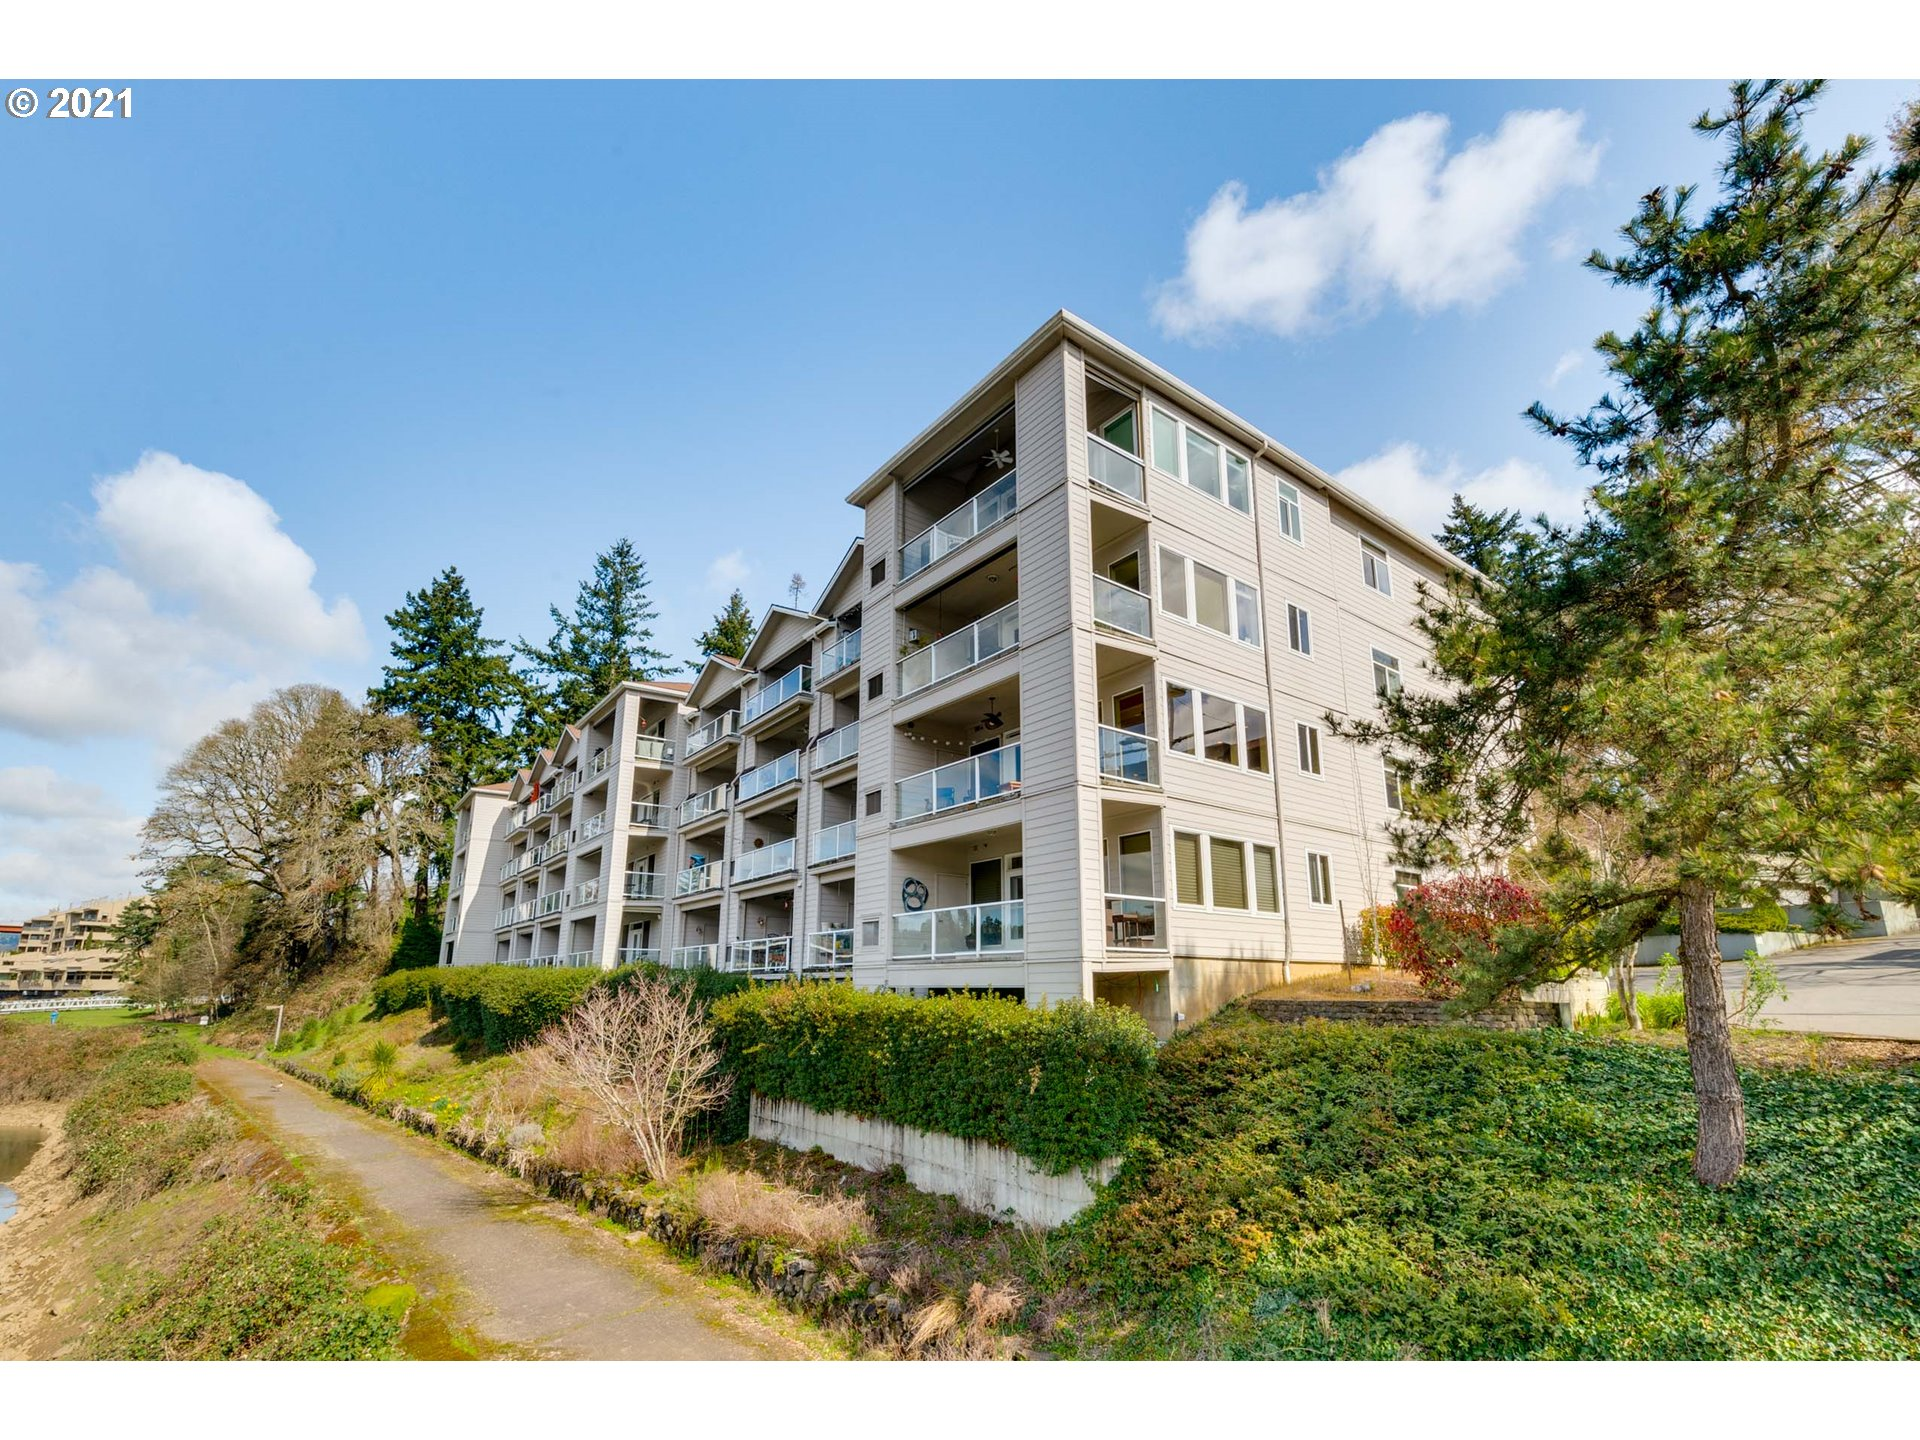 Serene Sellwood waterfront, single-level living w/stunning Willamette River views! Rare 3 bd/3 ba at Waverly Landing with 2 on-river balconies! One owner, pet-friendly, ground floor, accessible, open floor plan. Mstr. w/custom closets. Gated complex w/2 large, secured parking spaces, ample storage in condo & garage. Located next to interior courtyard, adjacent to the Springwater Trail & Waverly Marina. Only 6 blocks to Sellwood restaurants, shopping, & amenities plus easy access to downtown!